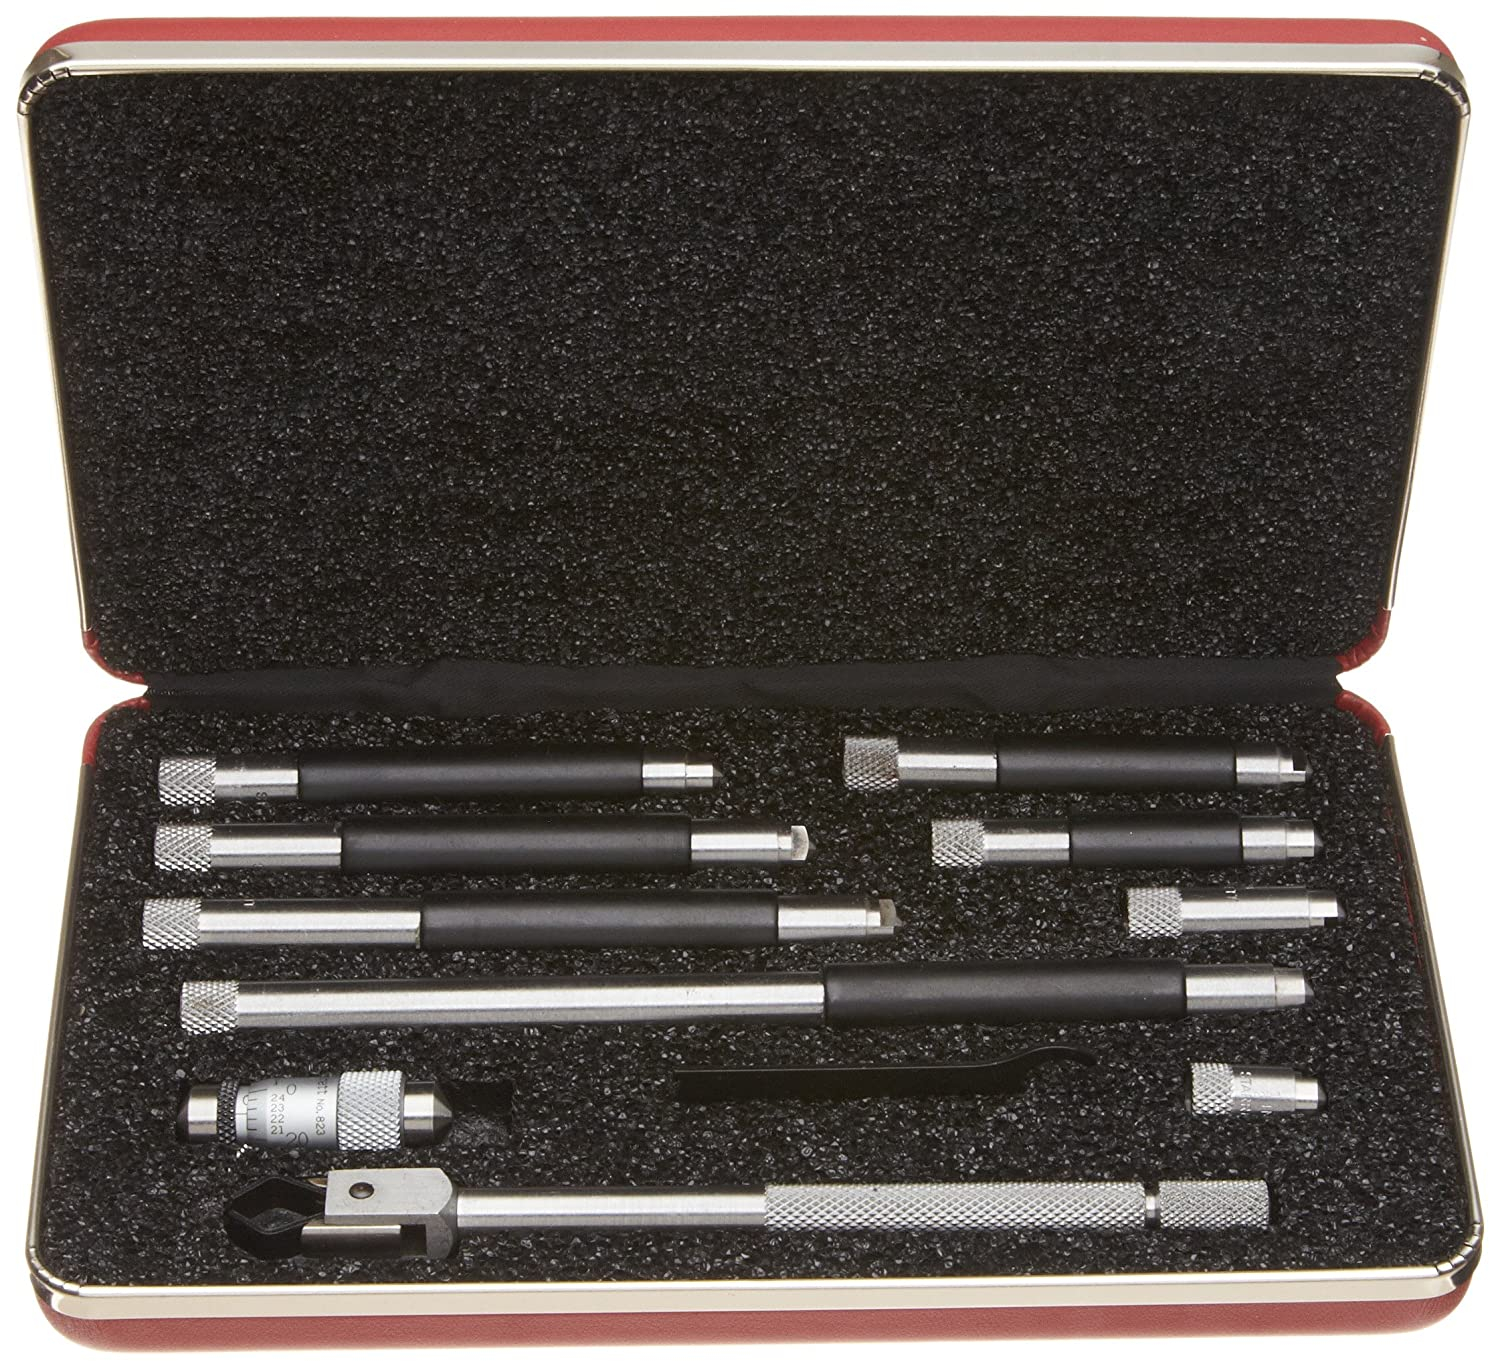 1.5-12 Range Starrett 823BZTCAL Tubular Vernier Inside Micrometer Set 0.001 Graduation -0.0001 Accuracy with a NIST-Traceable Calibration Certificate with Data